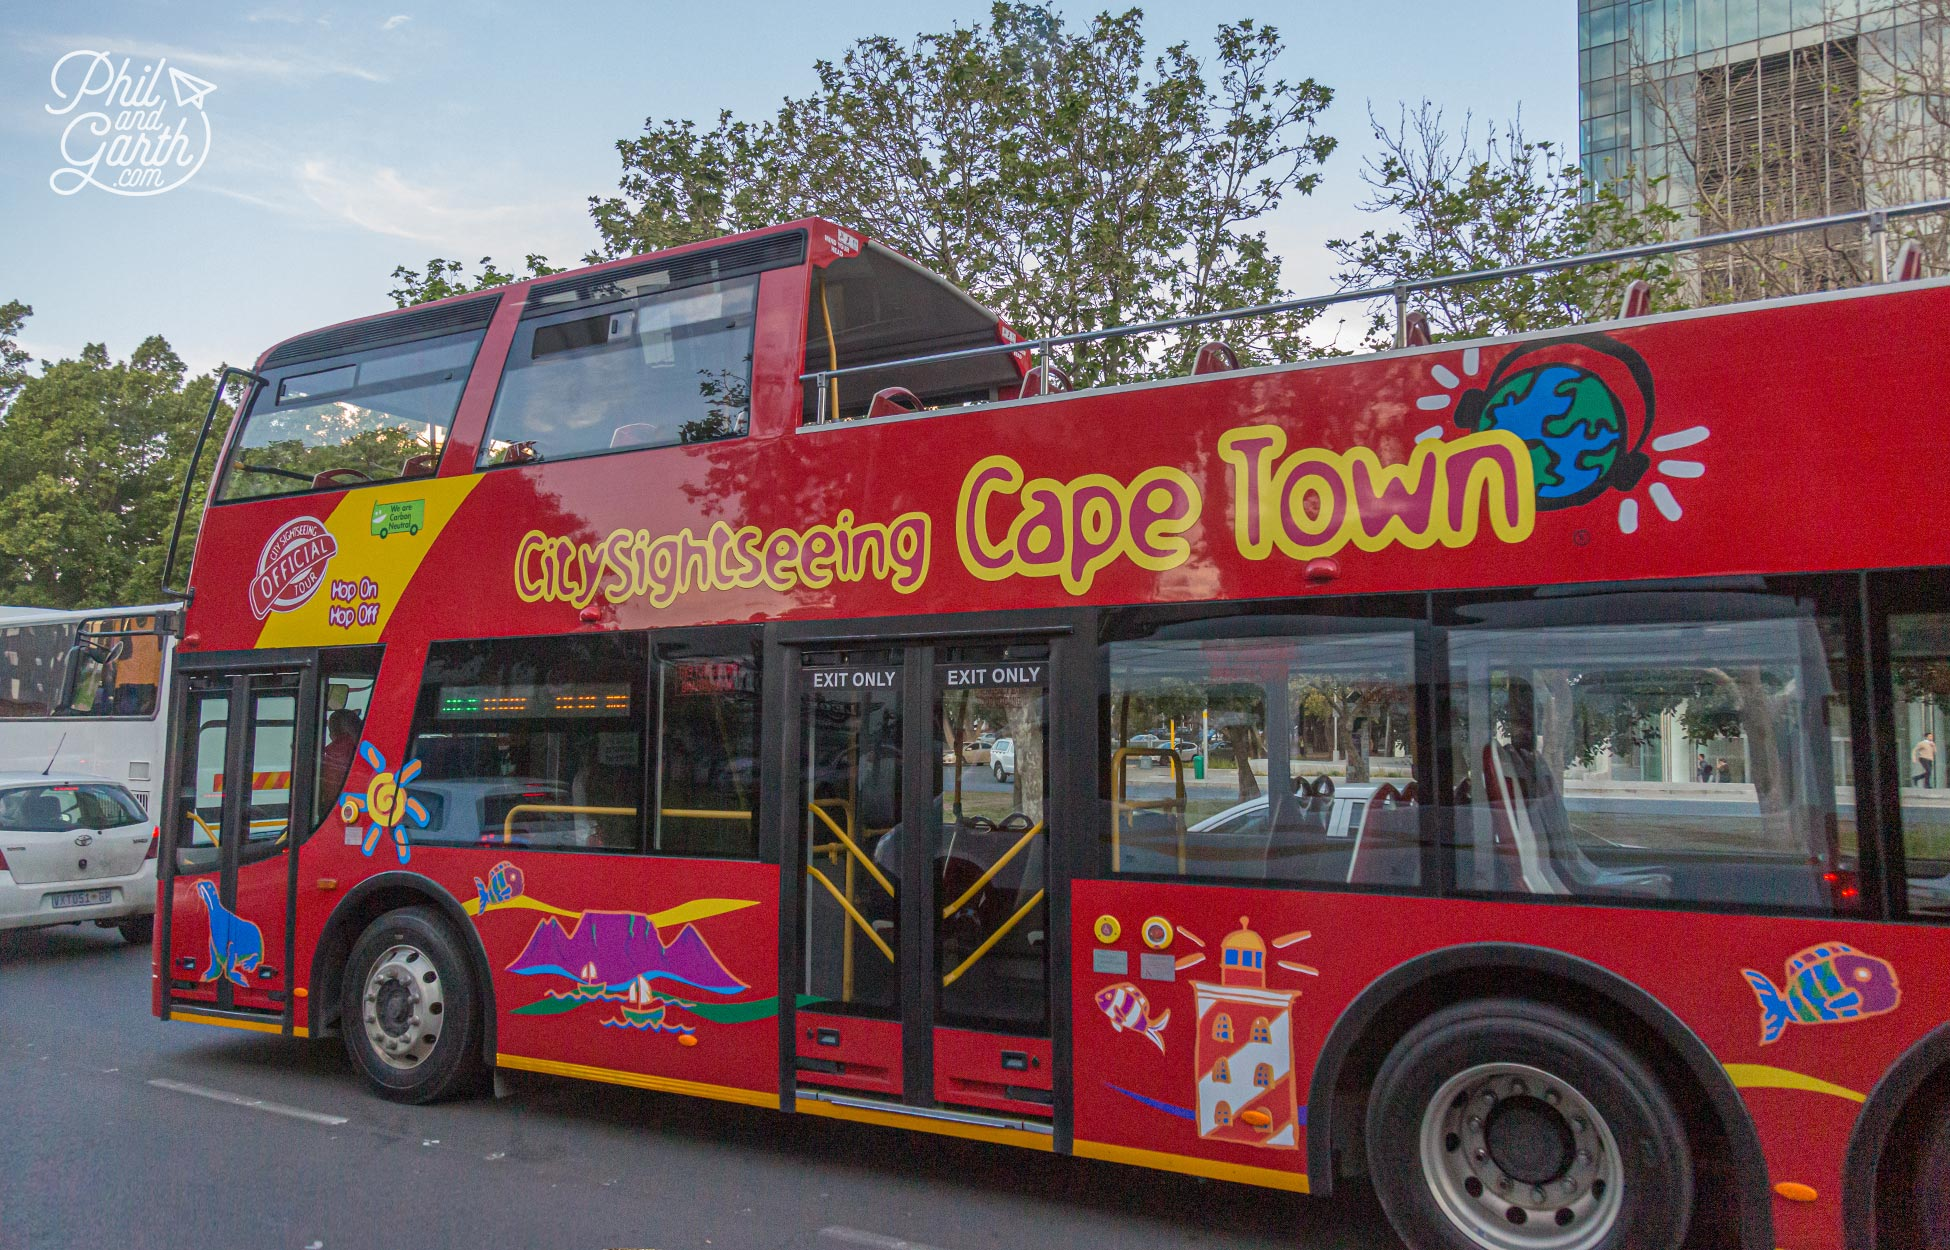 The City Sightseeing Cape Town tourist bus - The easiest way to get around